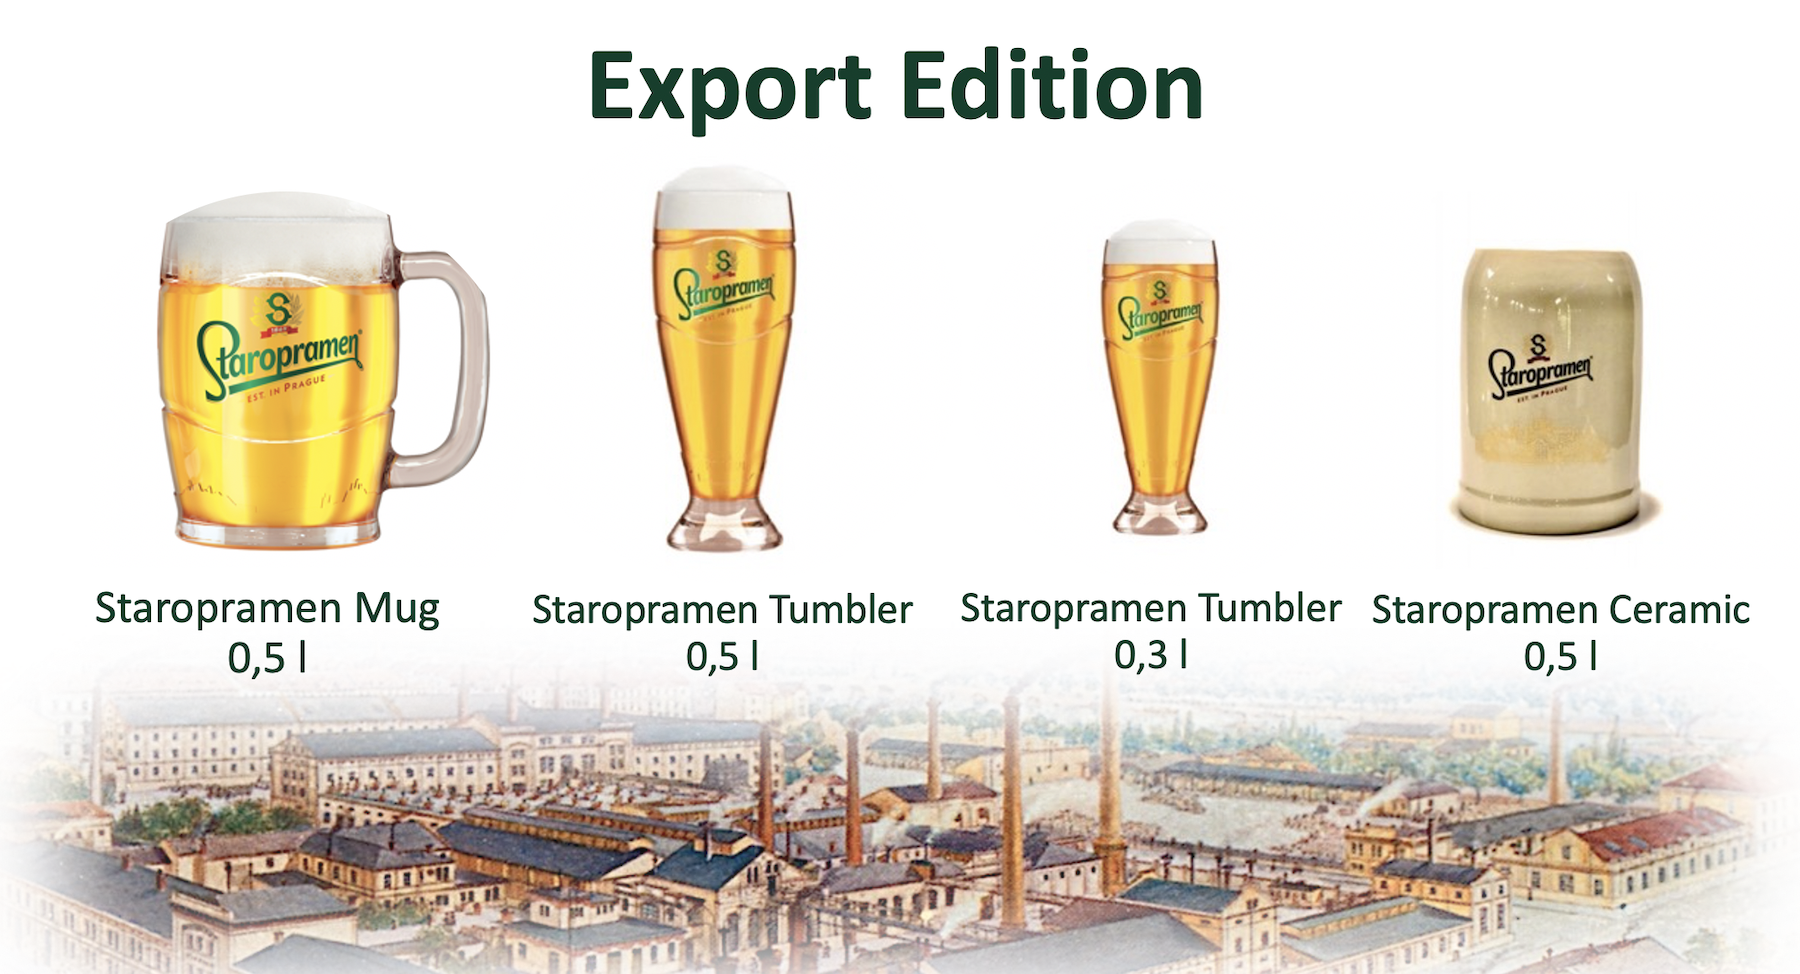 Staropramen Export Glasses